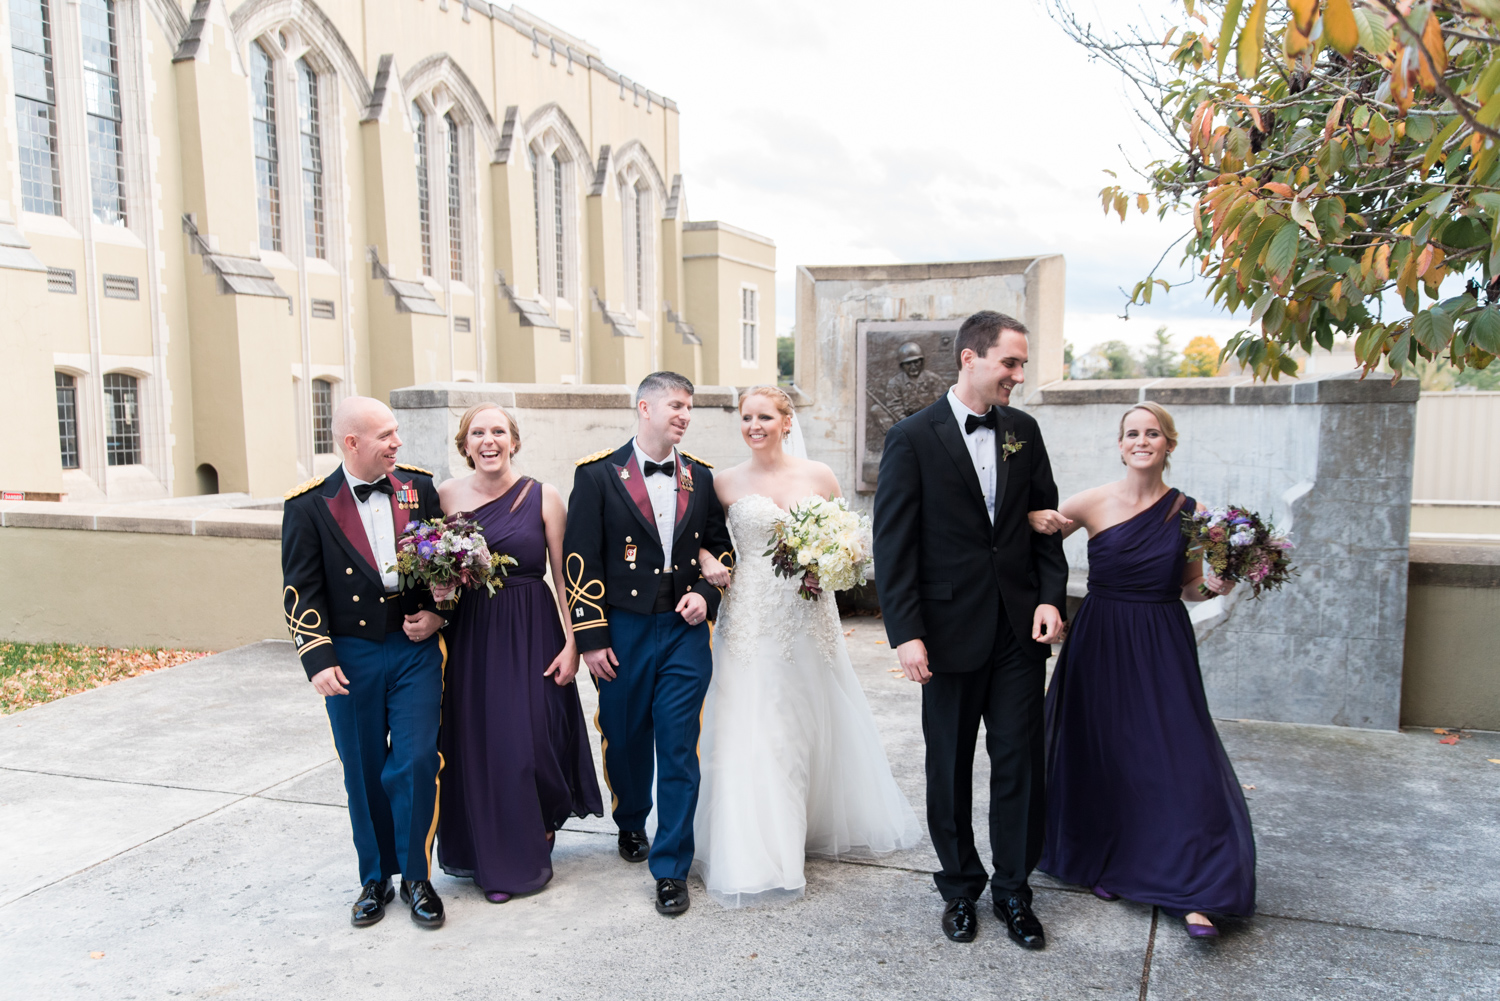 Purple Fall Wedding at VMI Lexington VA Destination Wedding-191.JPG